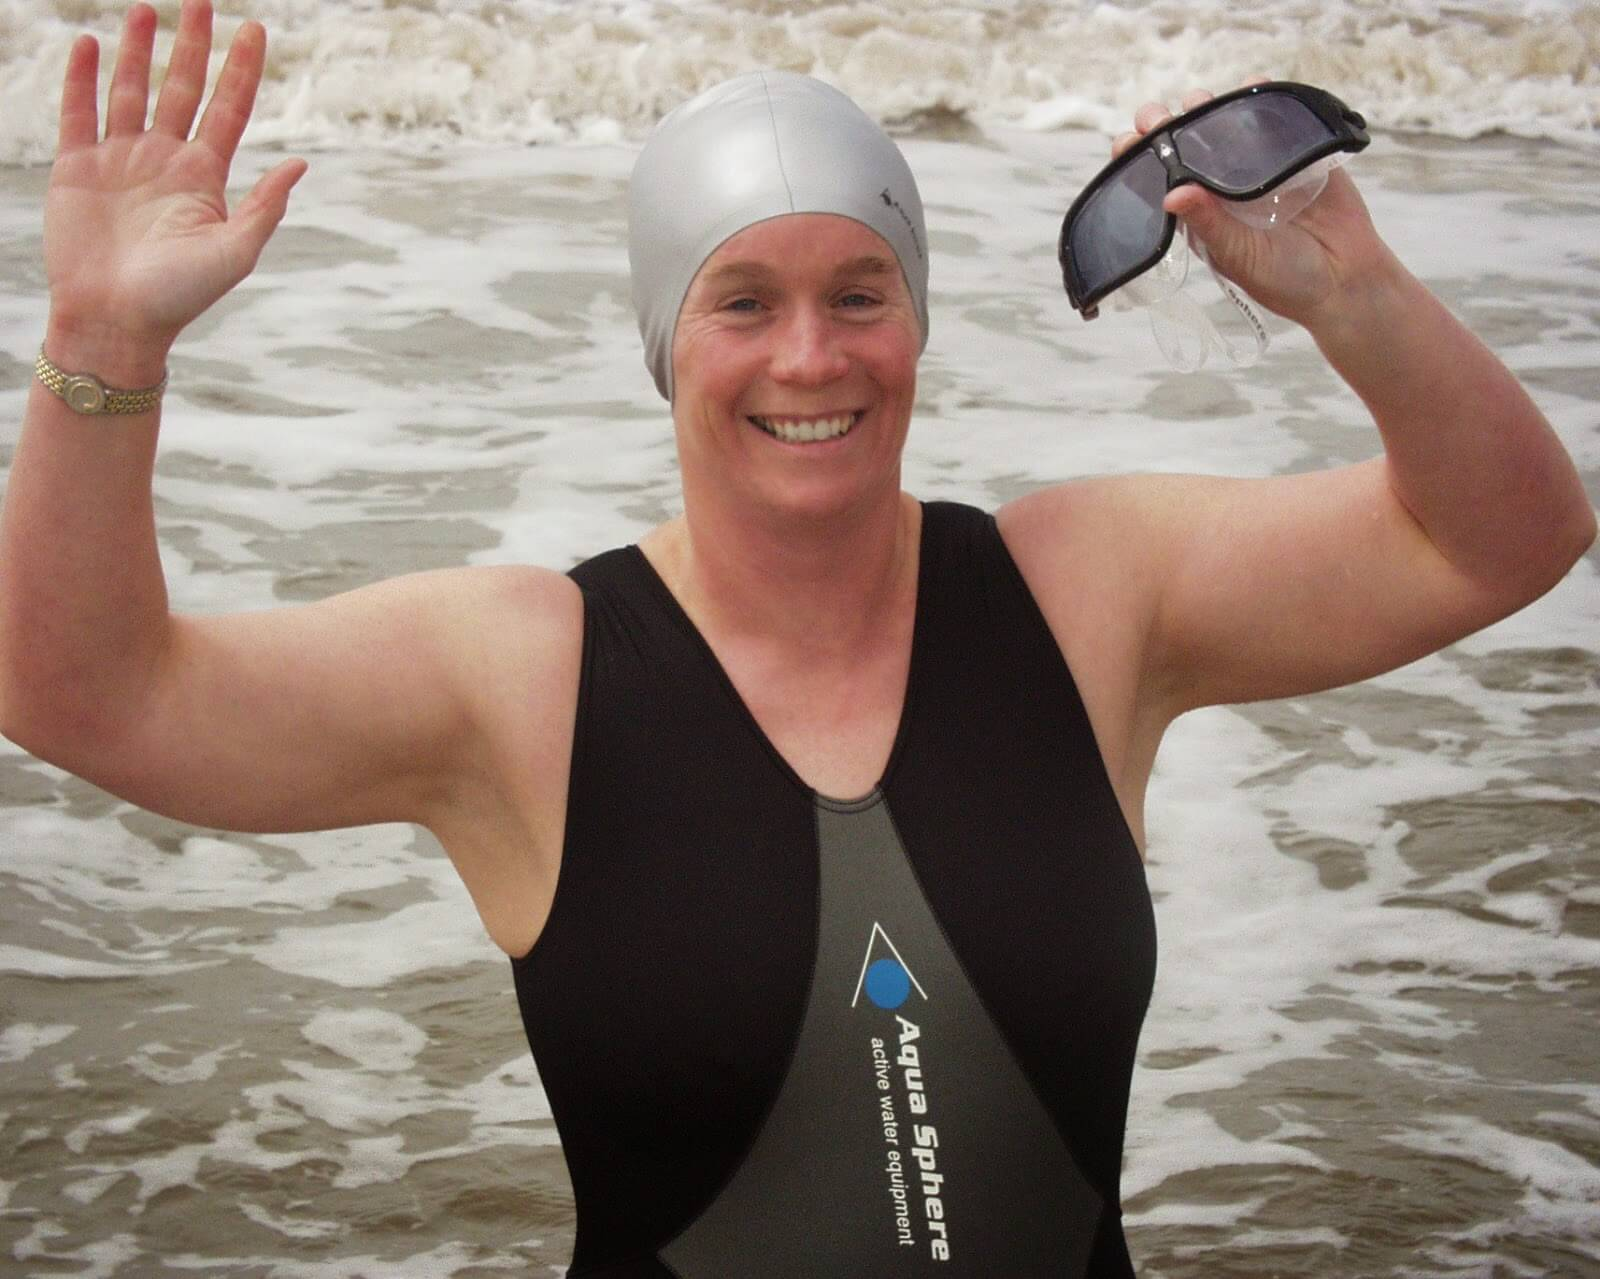 Open water swimmer and Endless Pool owner Dr. Julie Bradshaw MBE